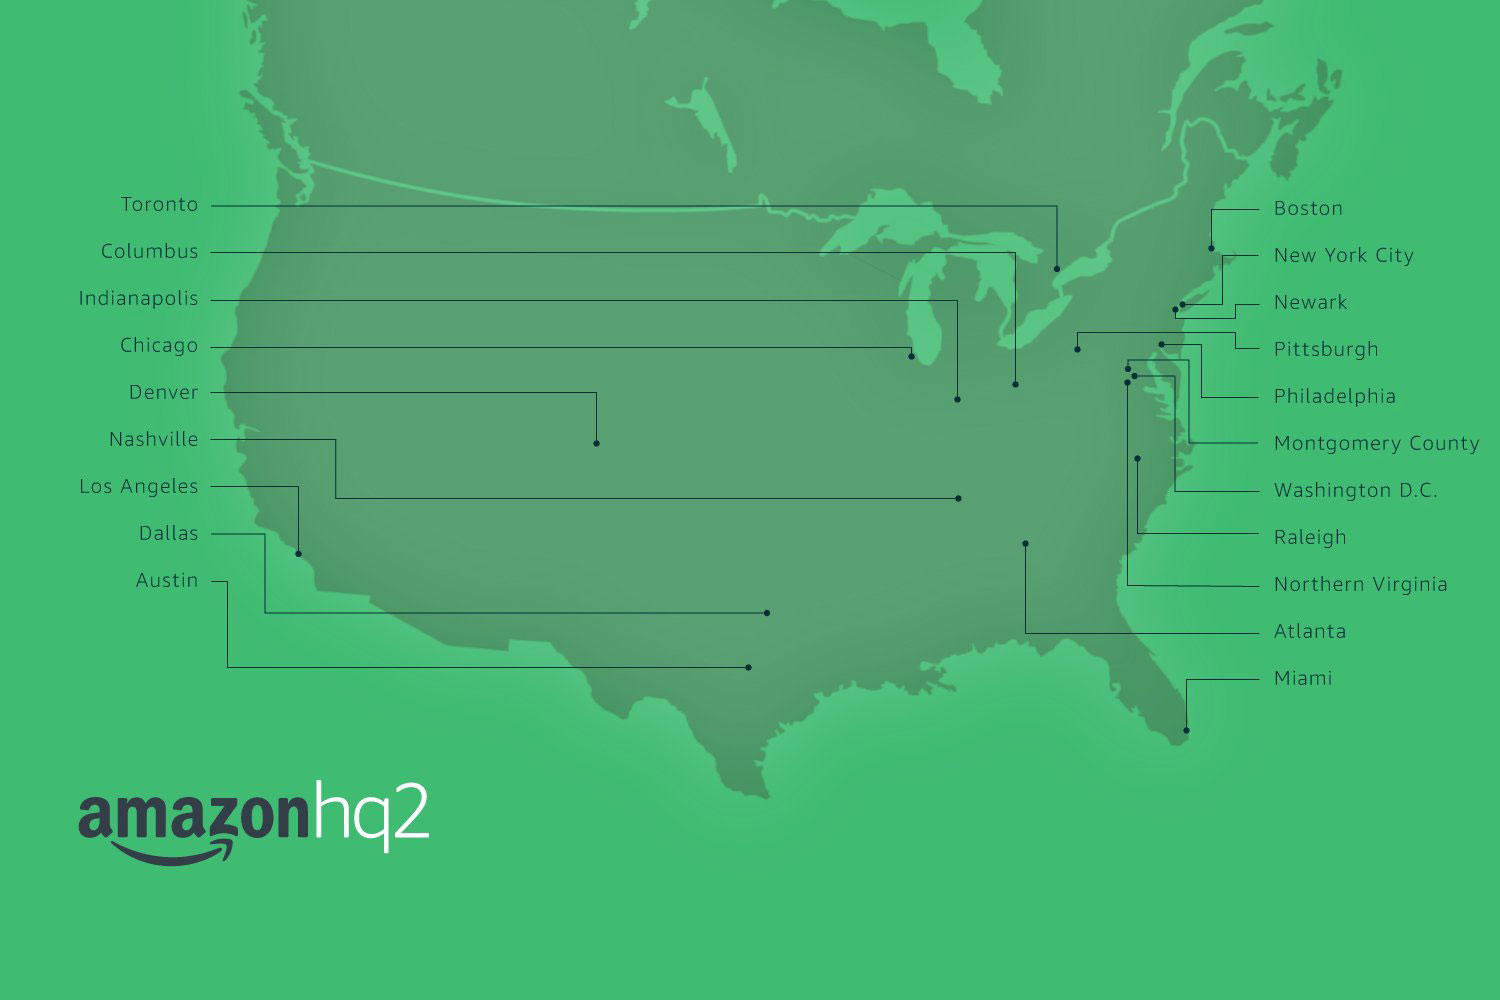 Photo: Amazon HQ2 Finalist Map - Courtesy